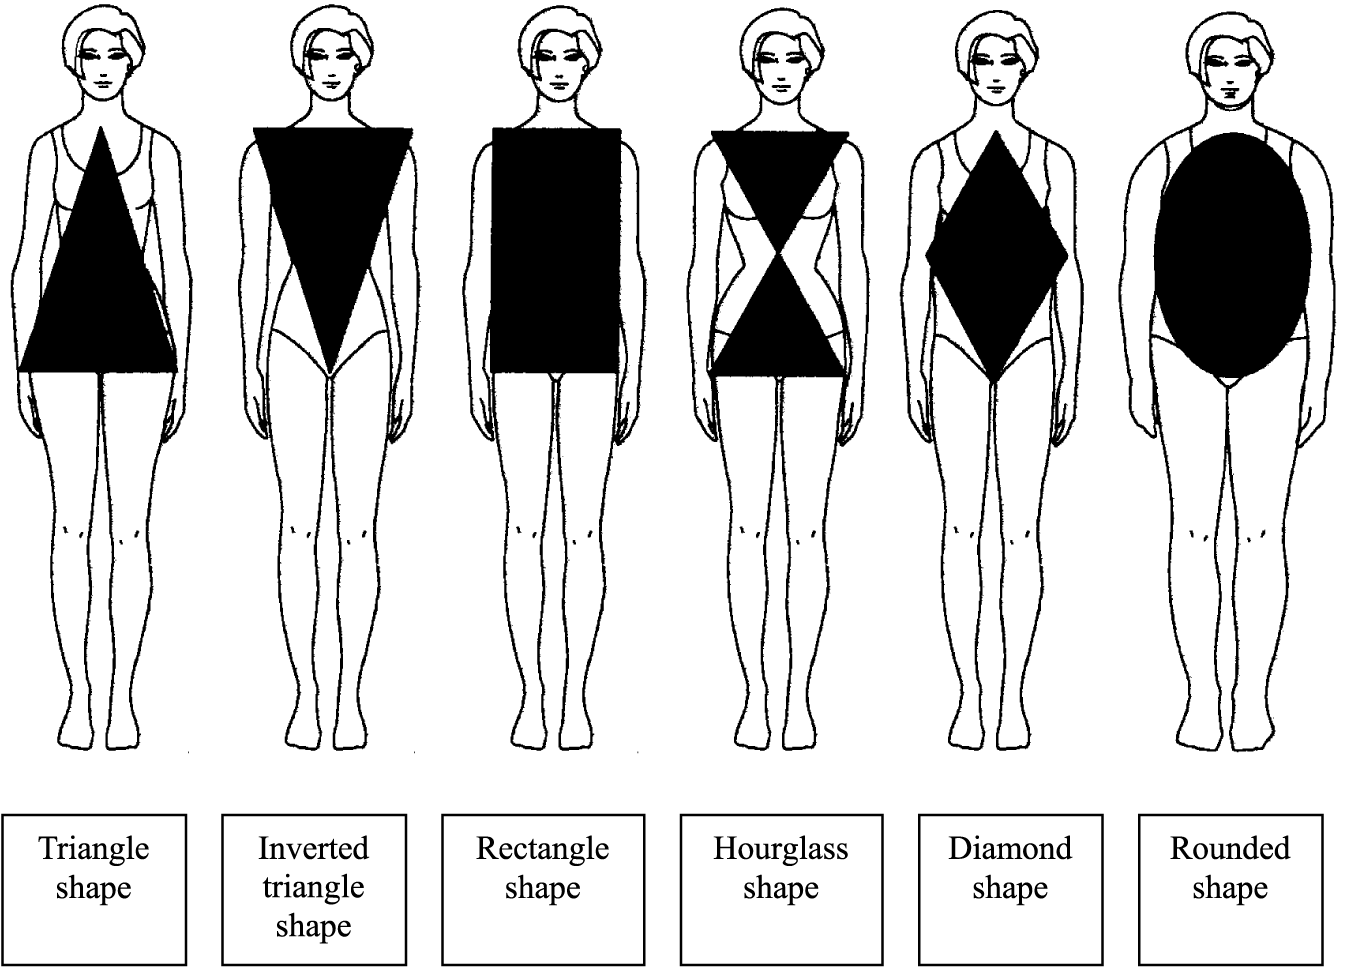 Learn types of women shapes for dress that make a fashionable learn types of women shapes for dress that make a fashionable woman floridaeventfo Image collections